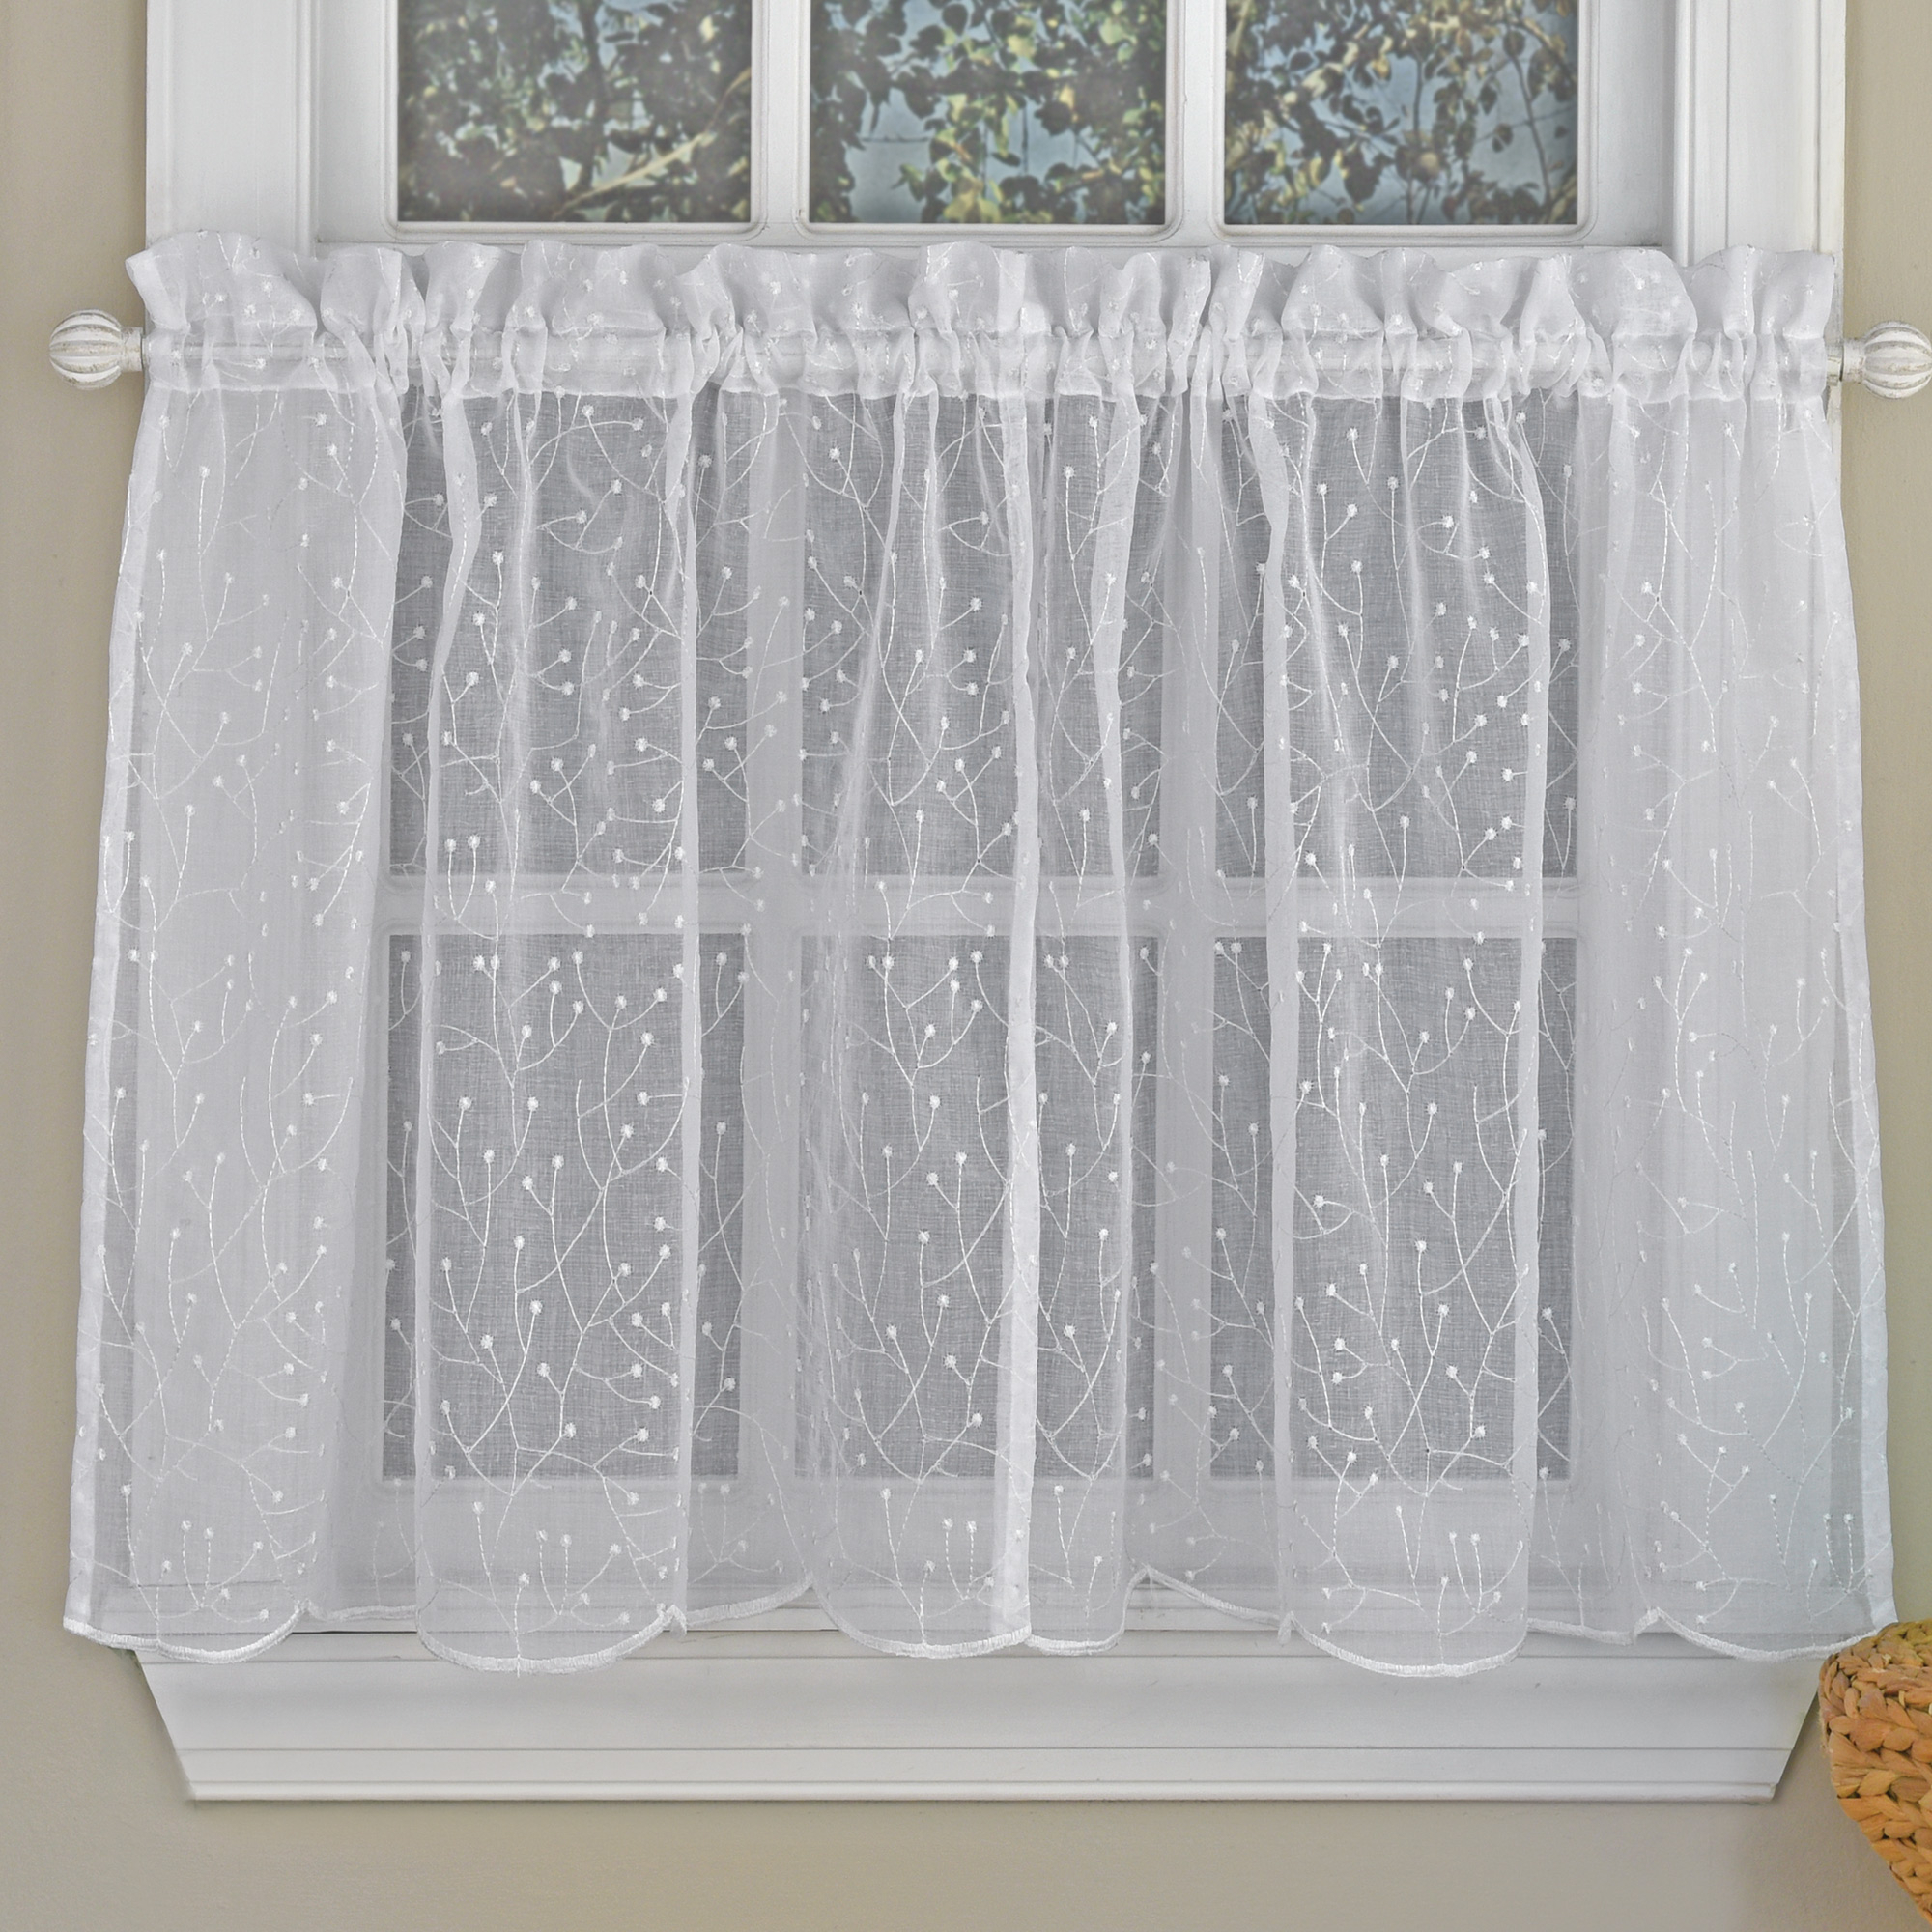 Floral Spray Semi Sheer Kitchen Window Curtain Tier Pair Or Valance White With Regard To Semi Sheer Rod Pocket Kitchen Curtain Valance And Tiers Sets (View 7 of 20)